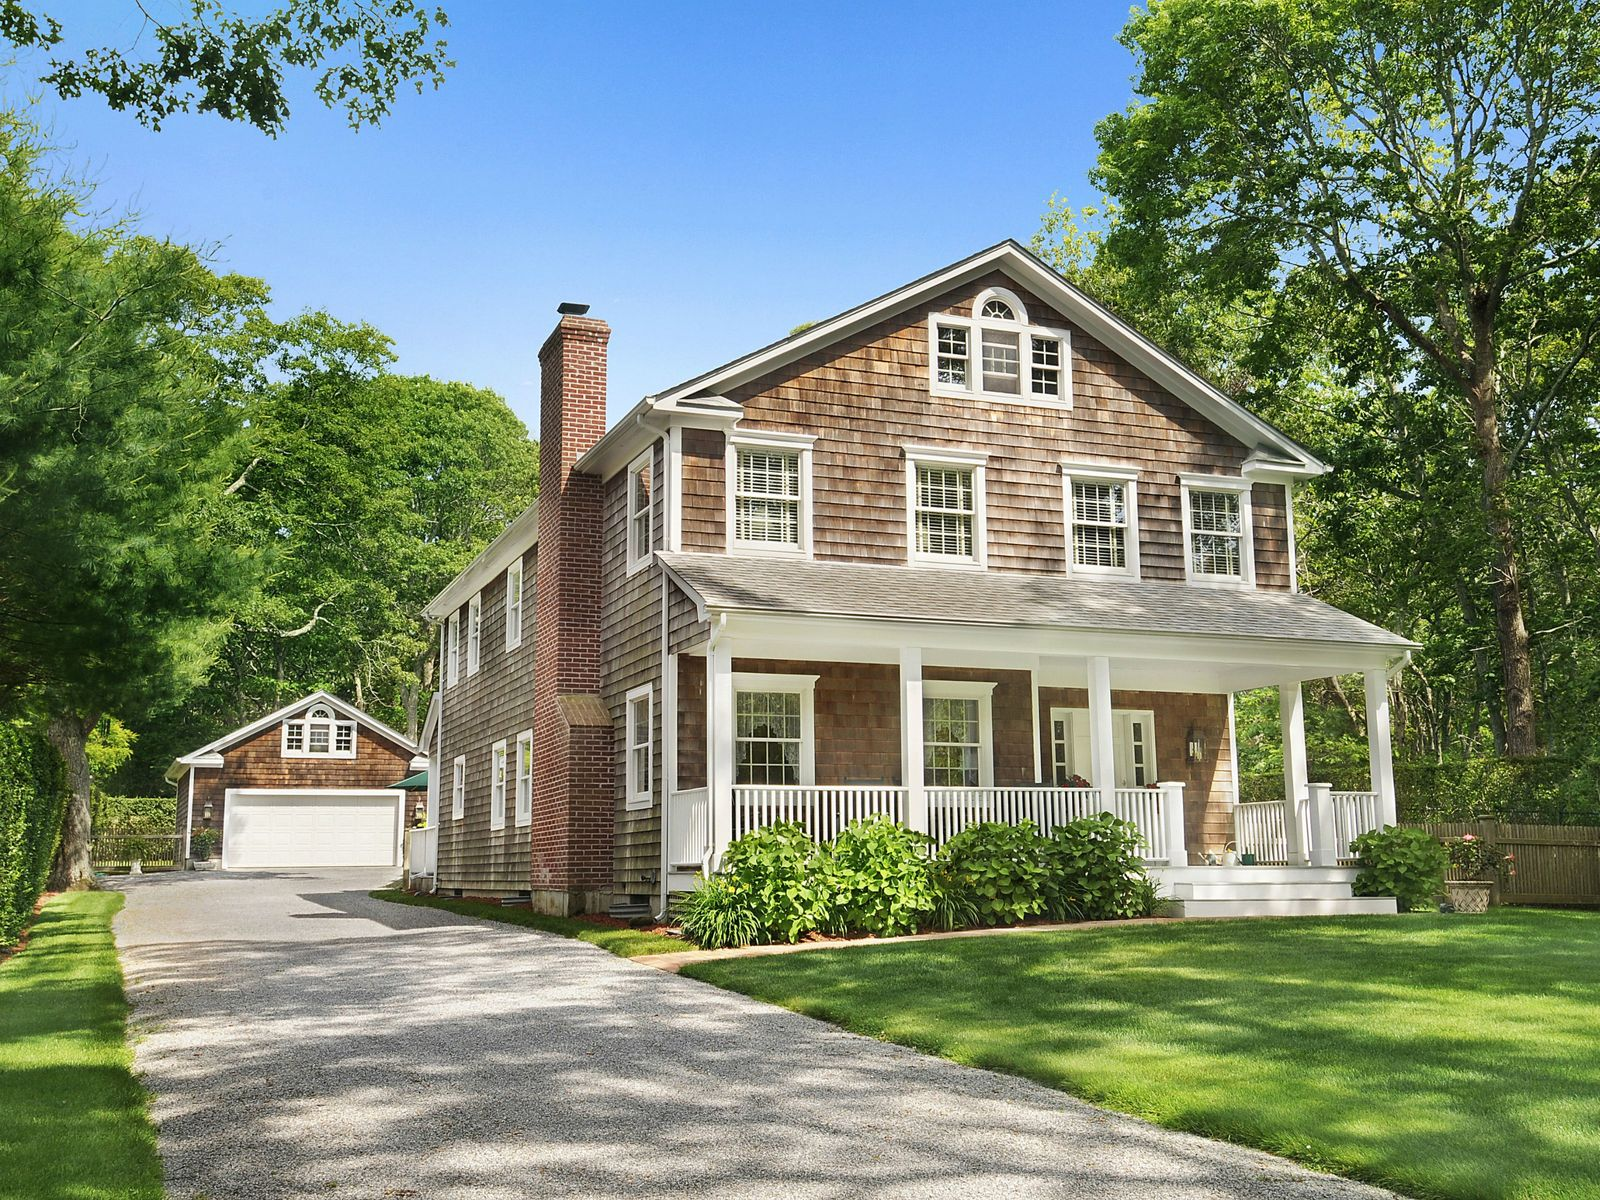 East Hampton Traditional, East Hampton NY Single Family Home - Hamptons Real Estate